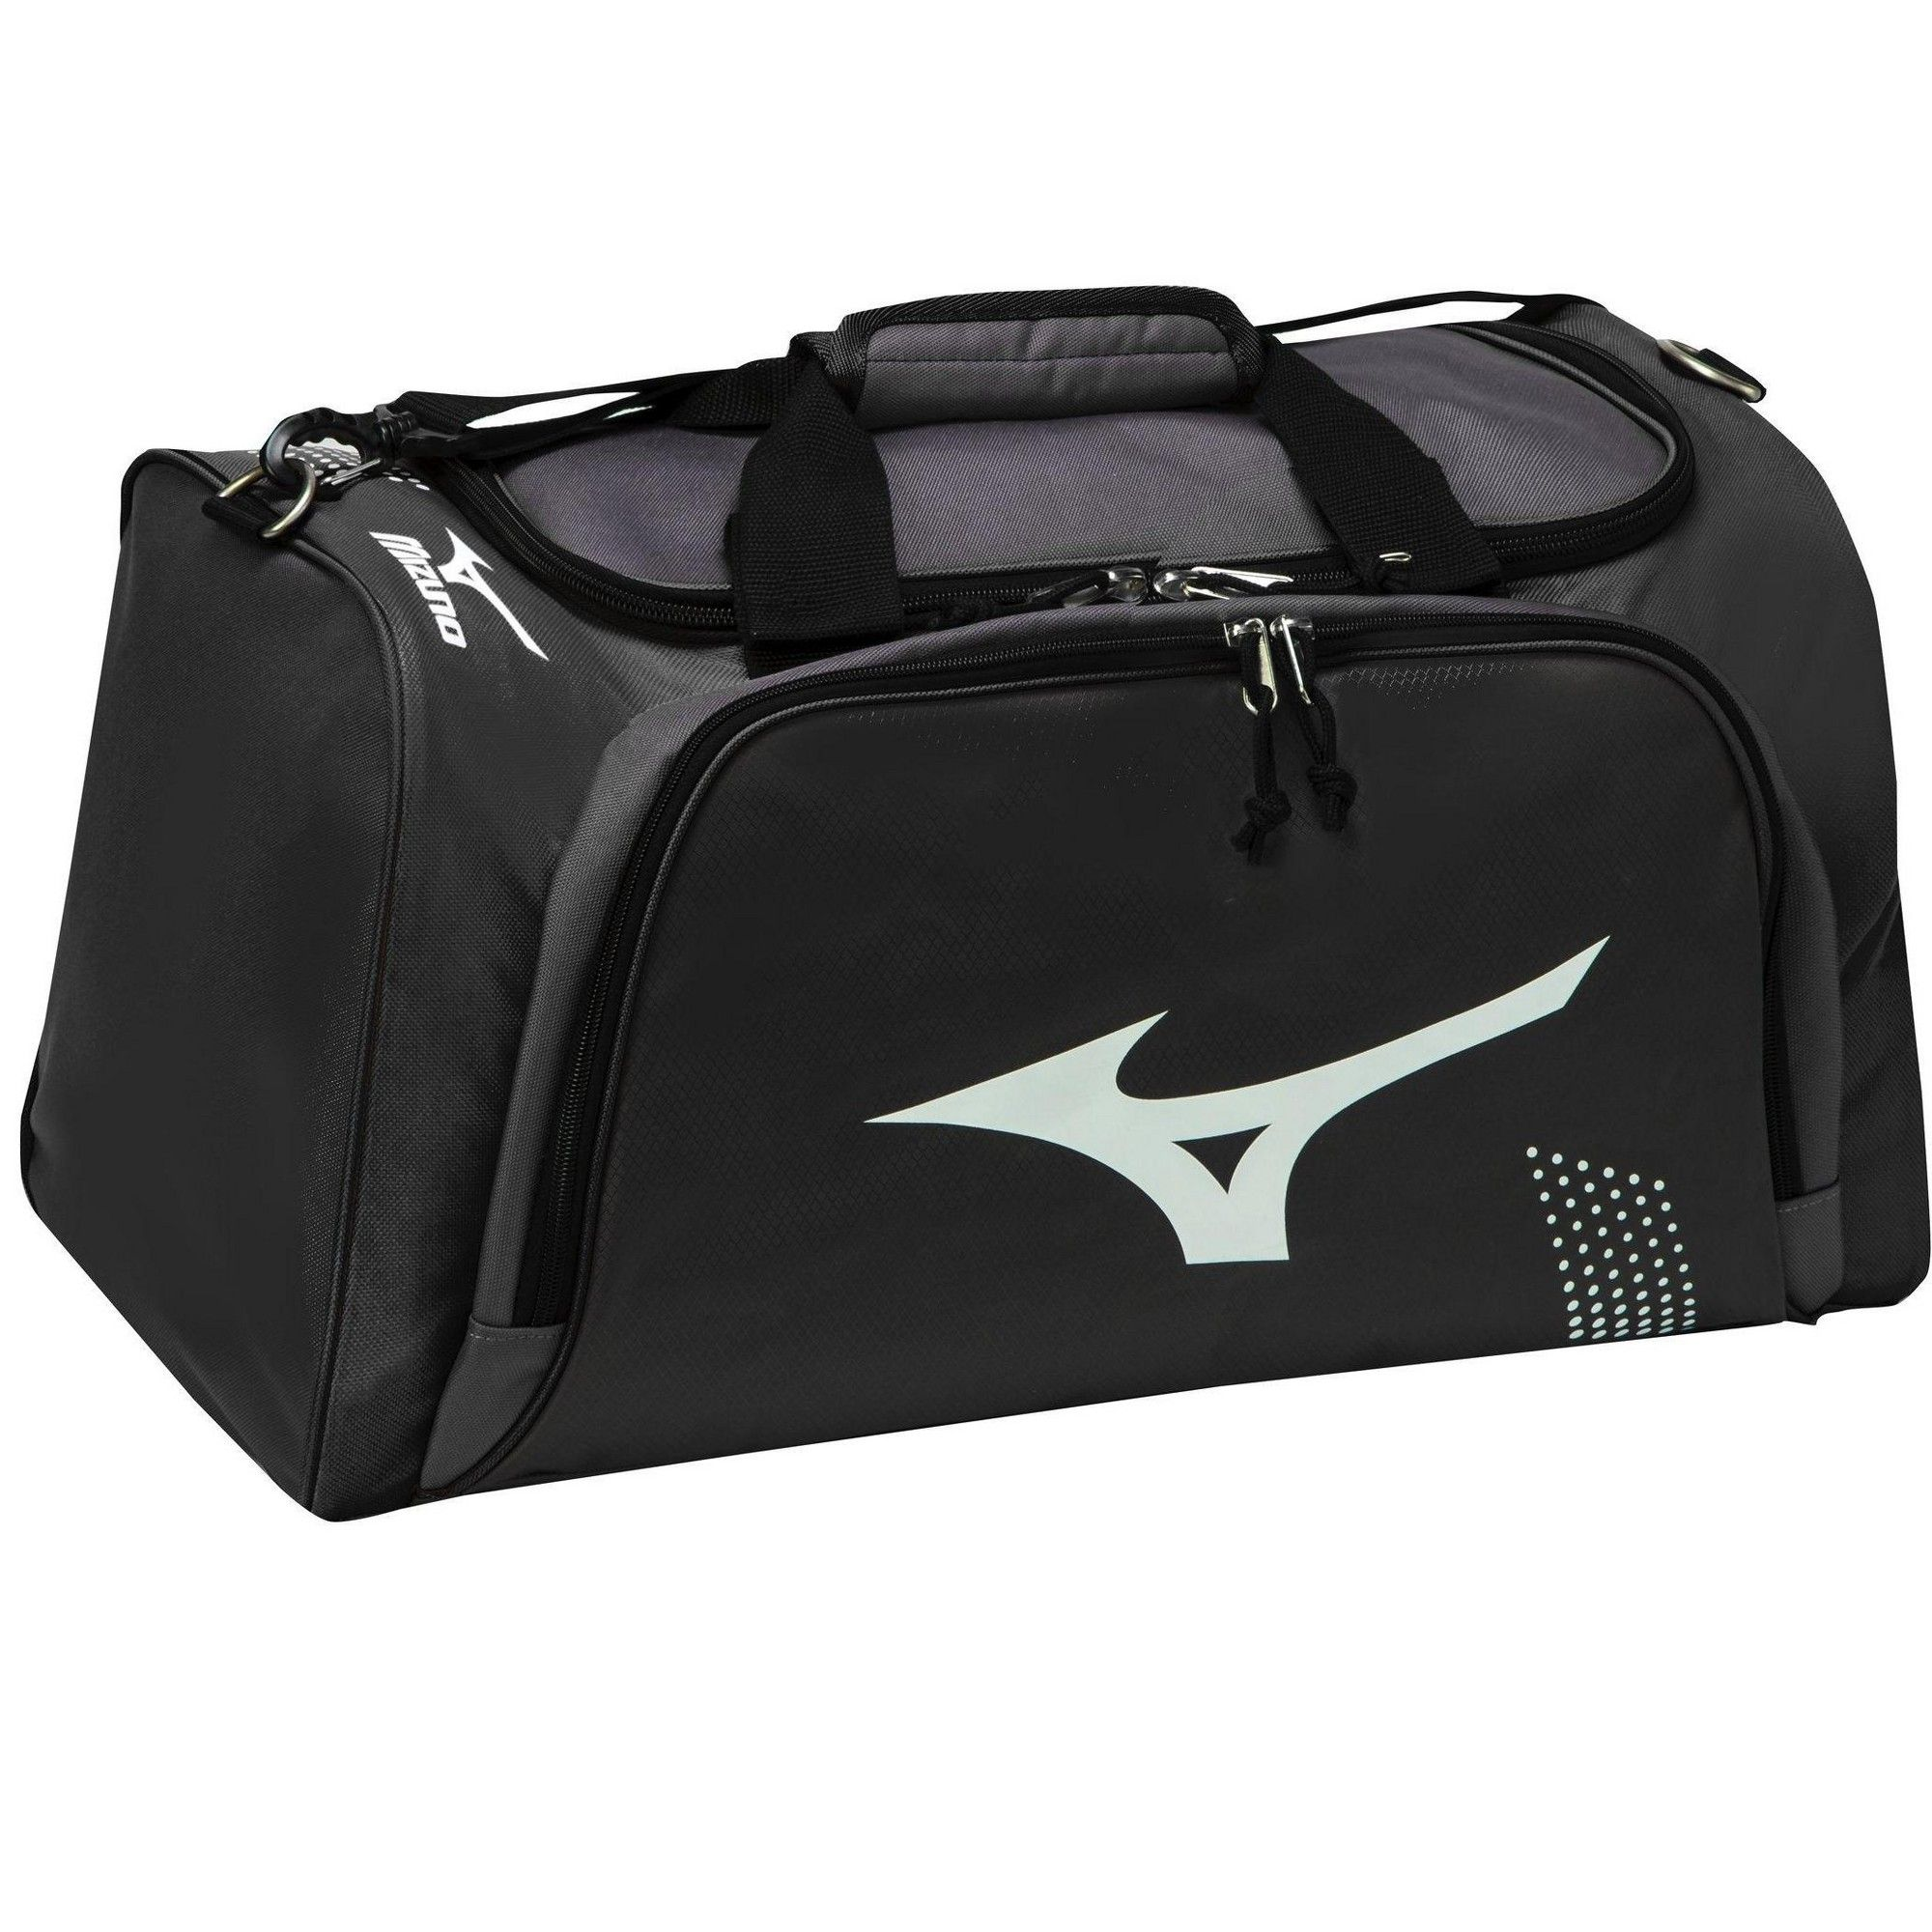 Mizuno Bolt Volleyball Duffle Size No Size In Color Grey Black 9190 Duffle Bag Duffle Bags